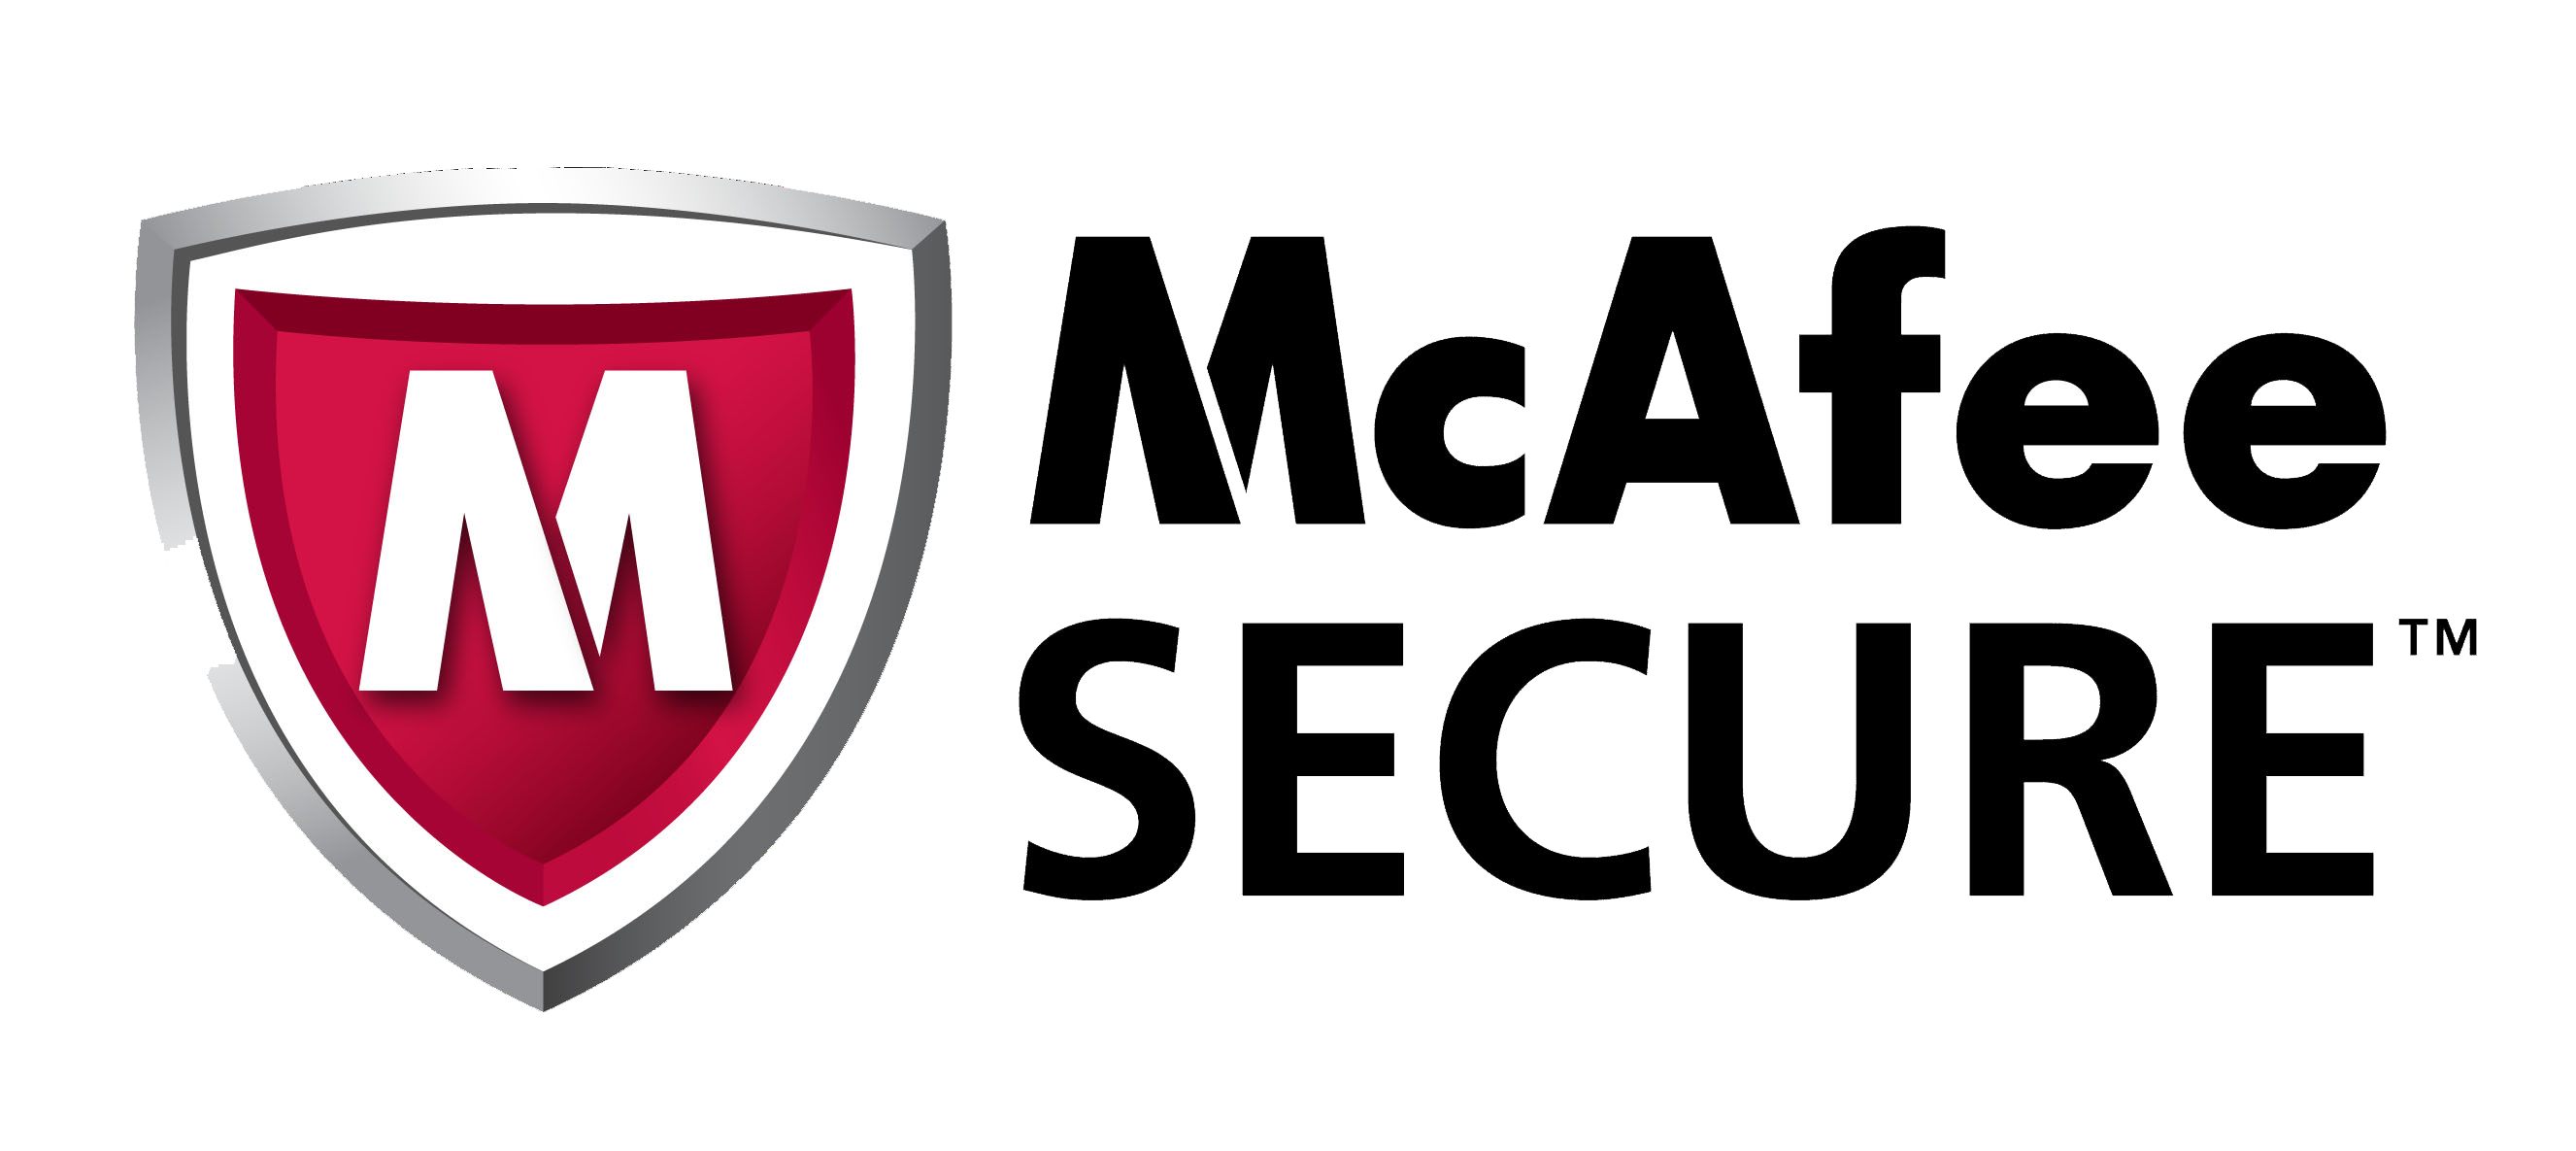 This website is secure with McAfee Secure